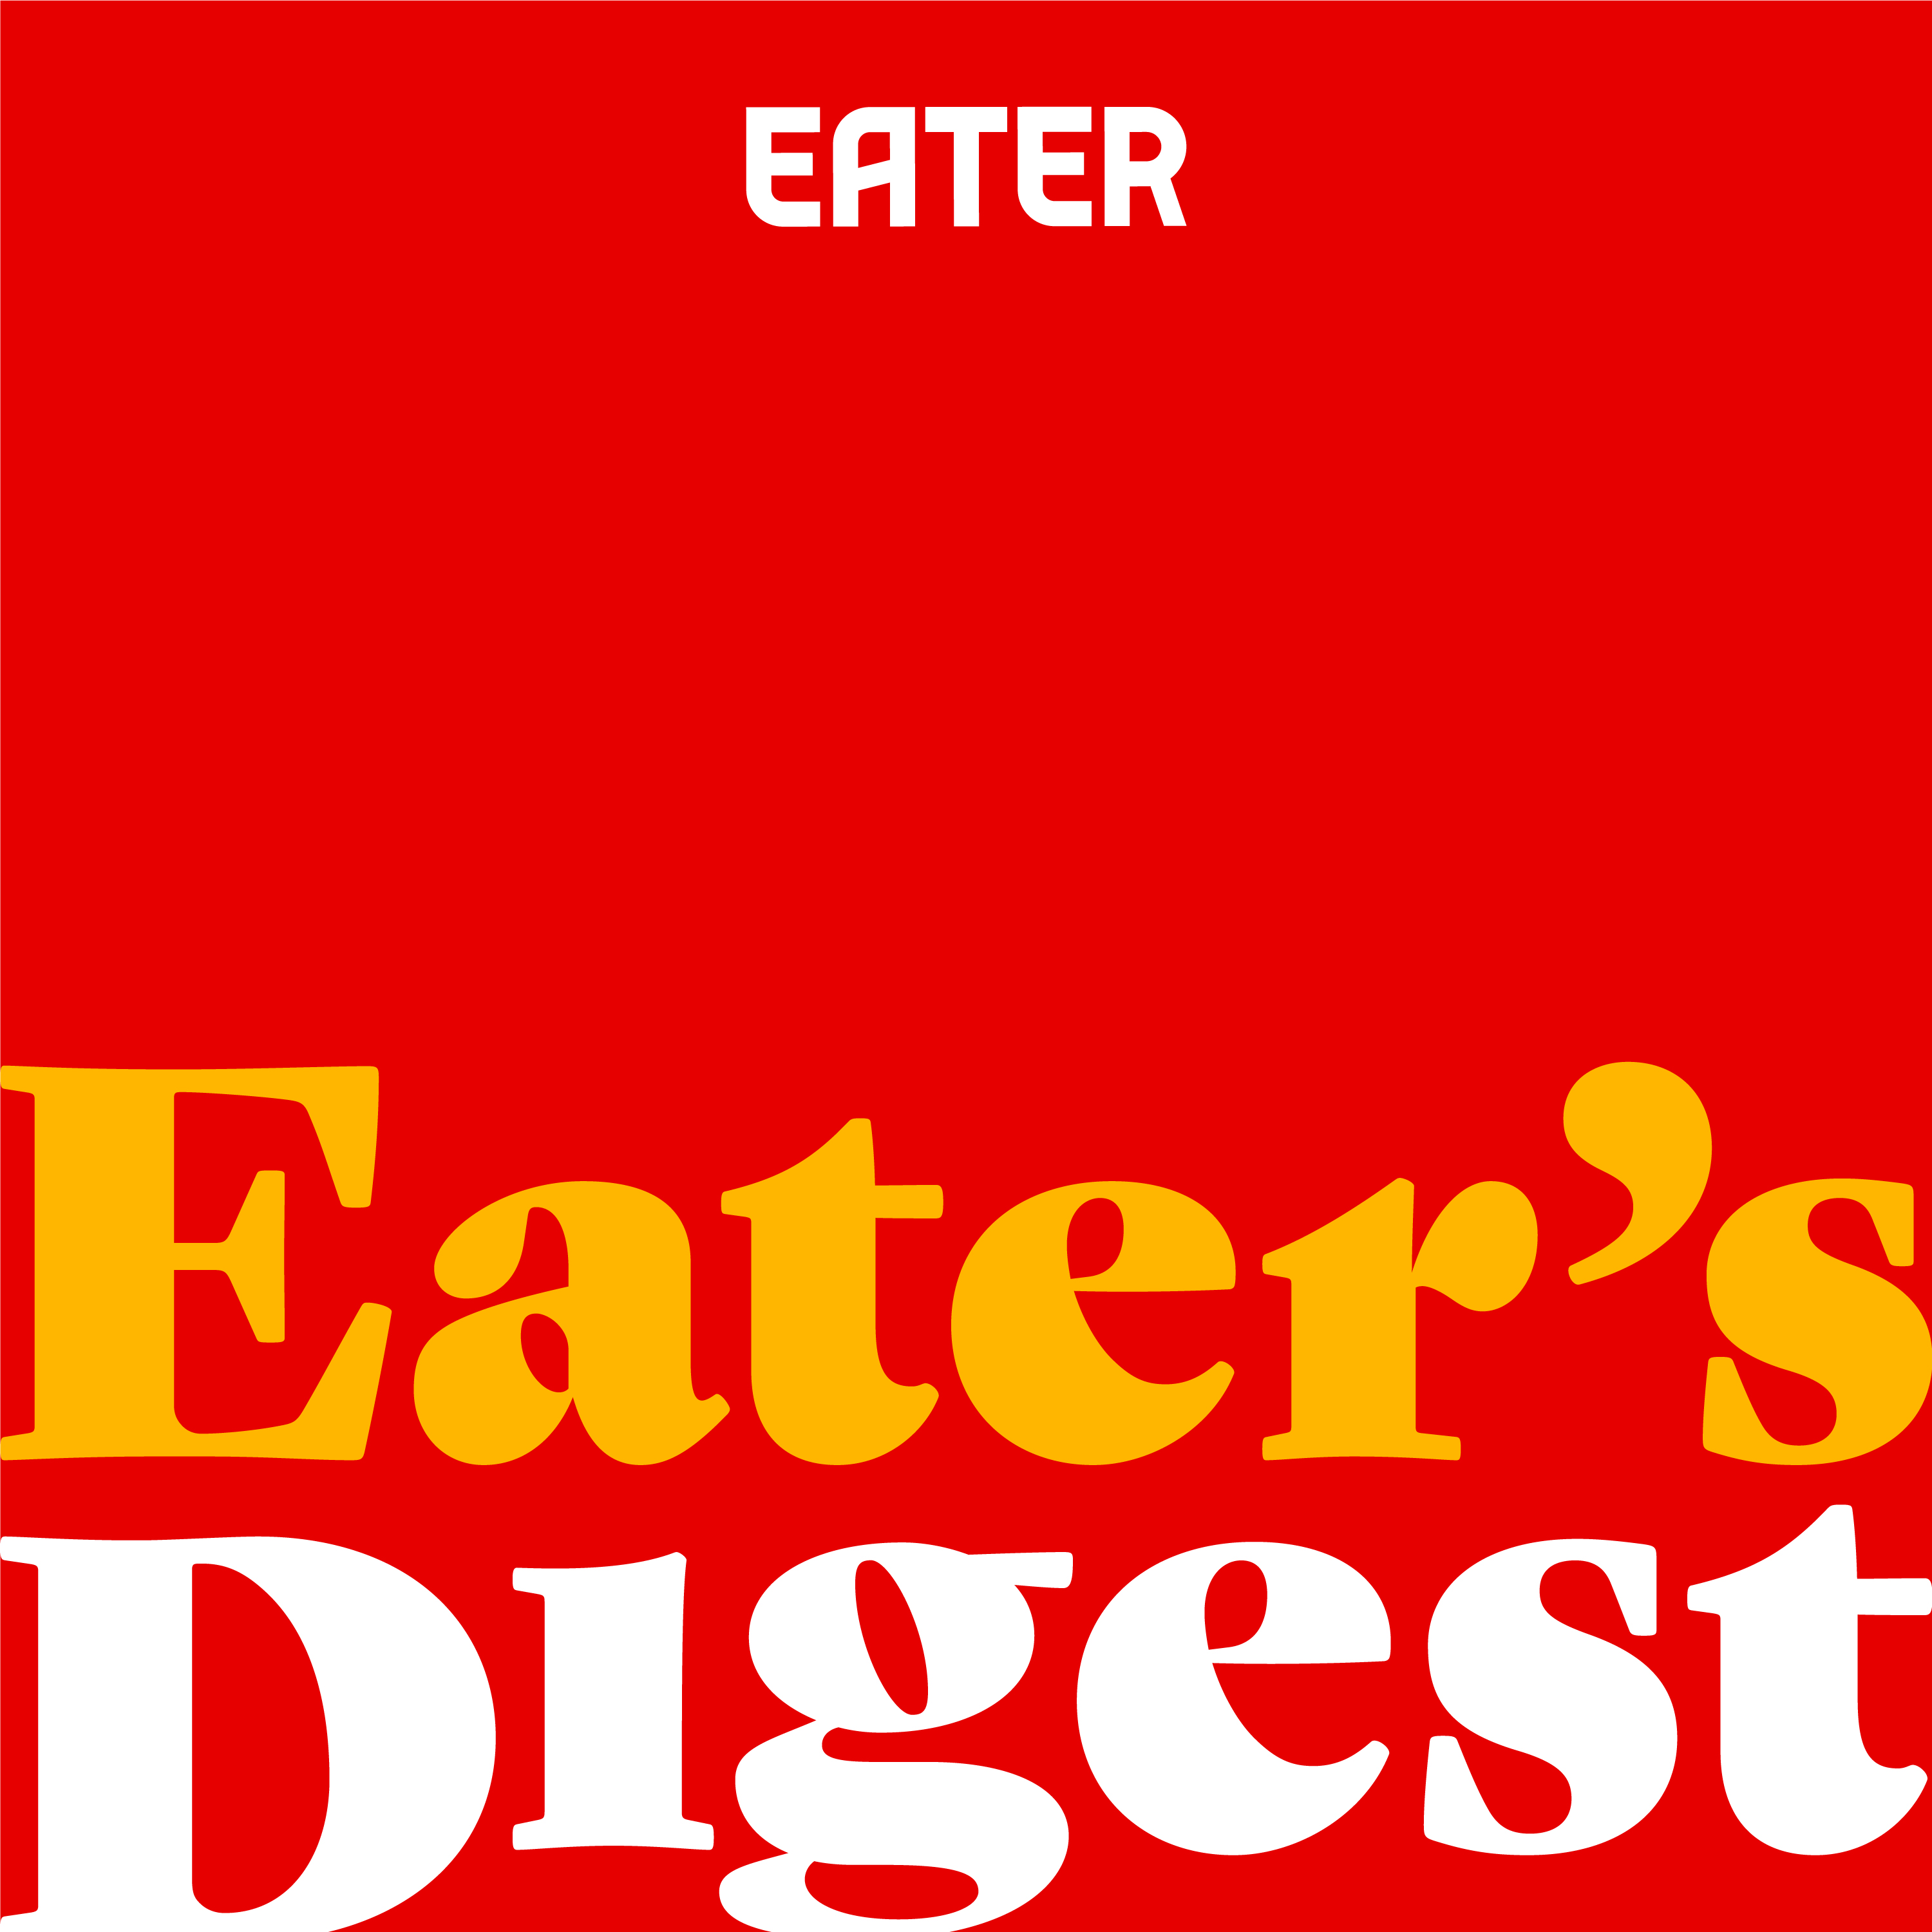 EAT 006 Eater'sDigest TileArt